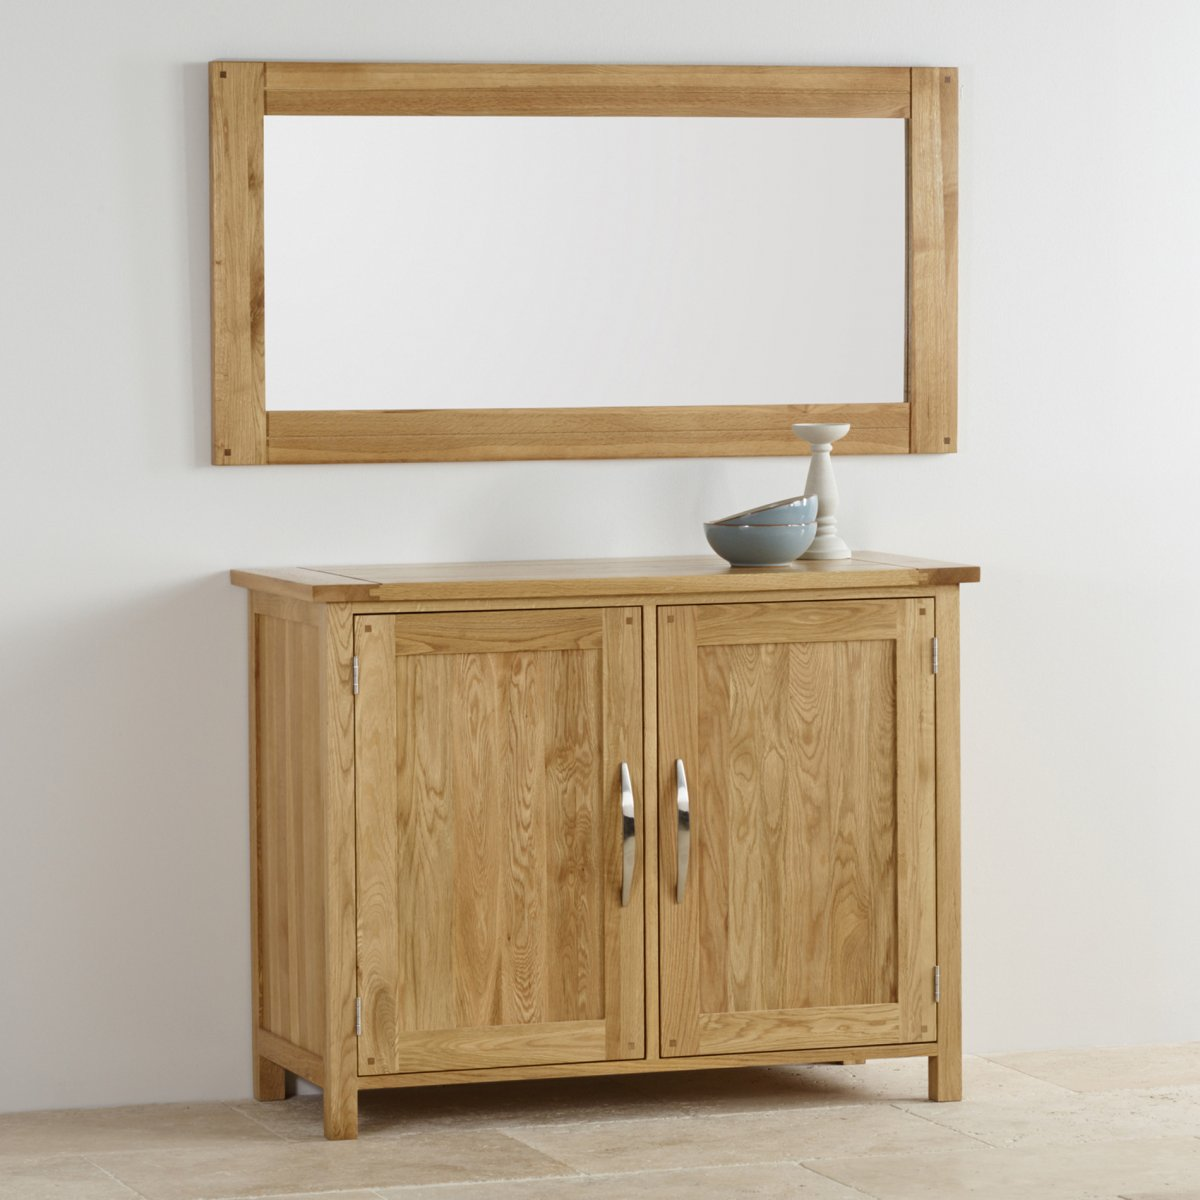 Newark natural solid oak wall mirror by oak furniture land for Oak furniture land